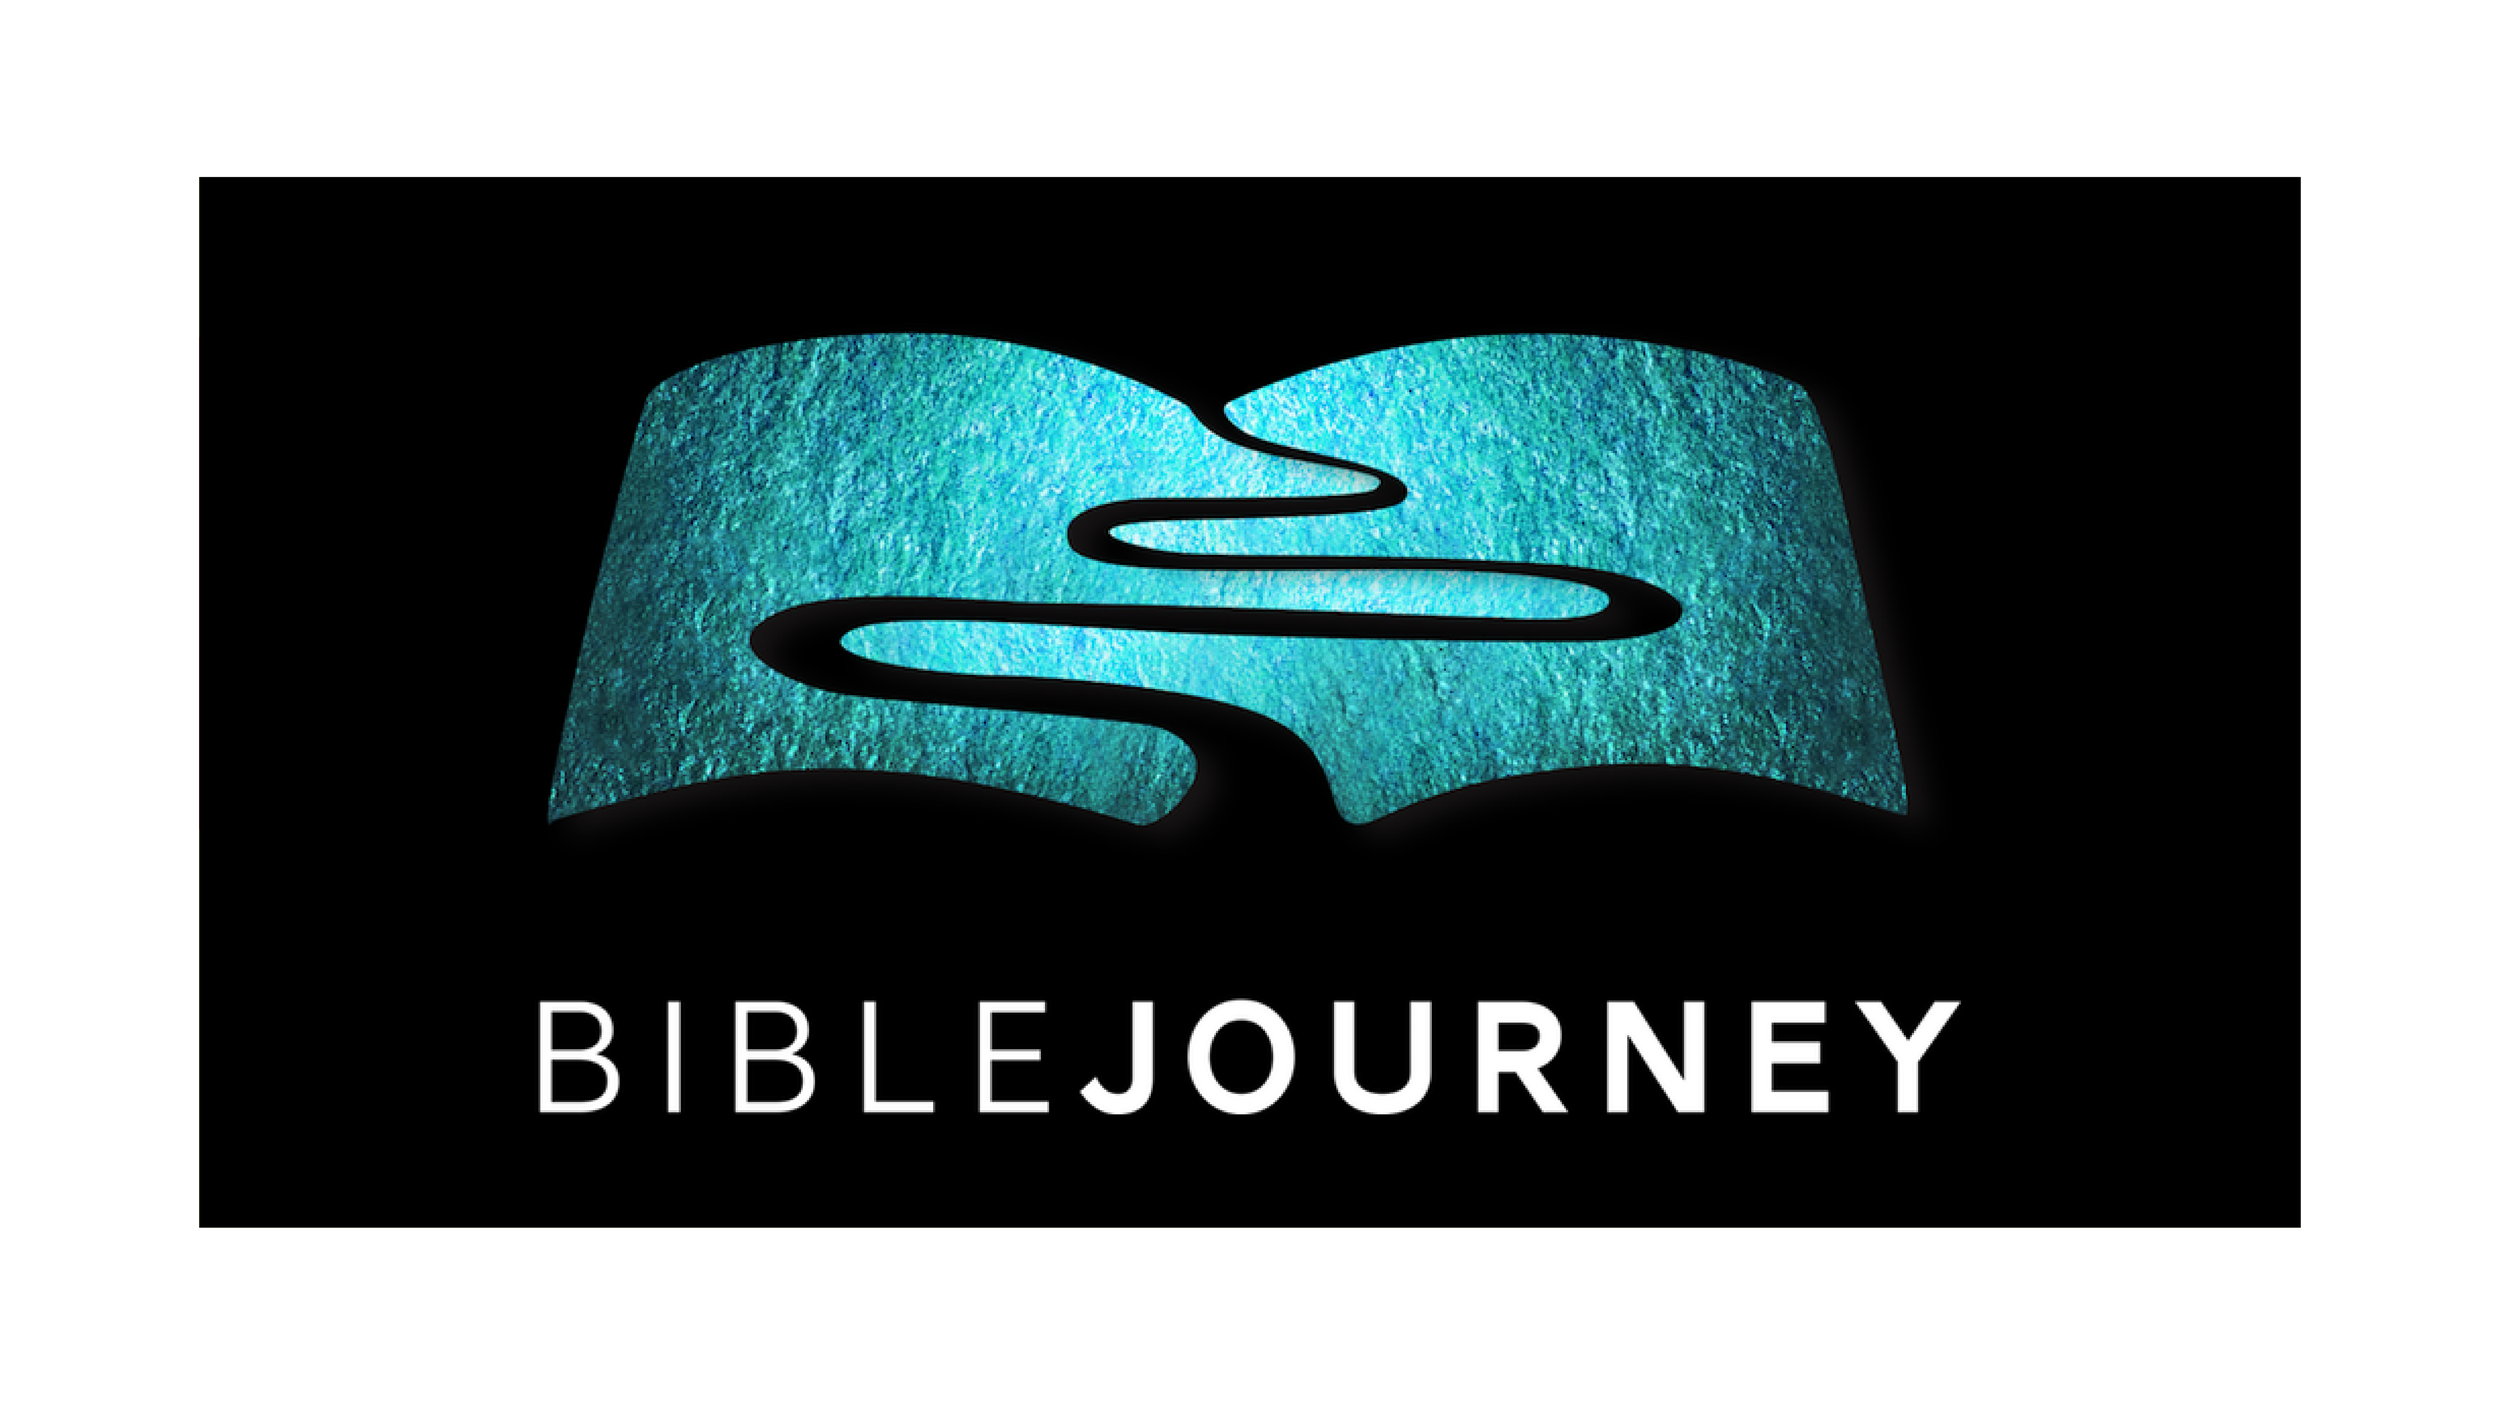 Biblejourney-01.png